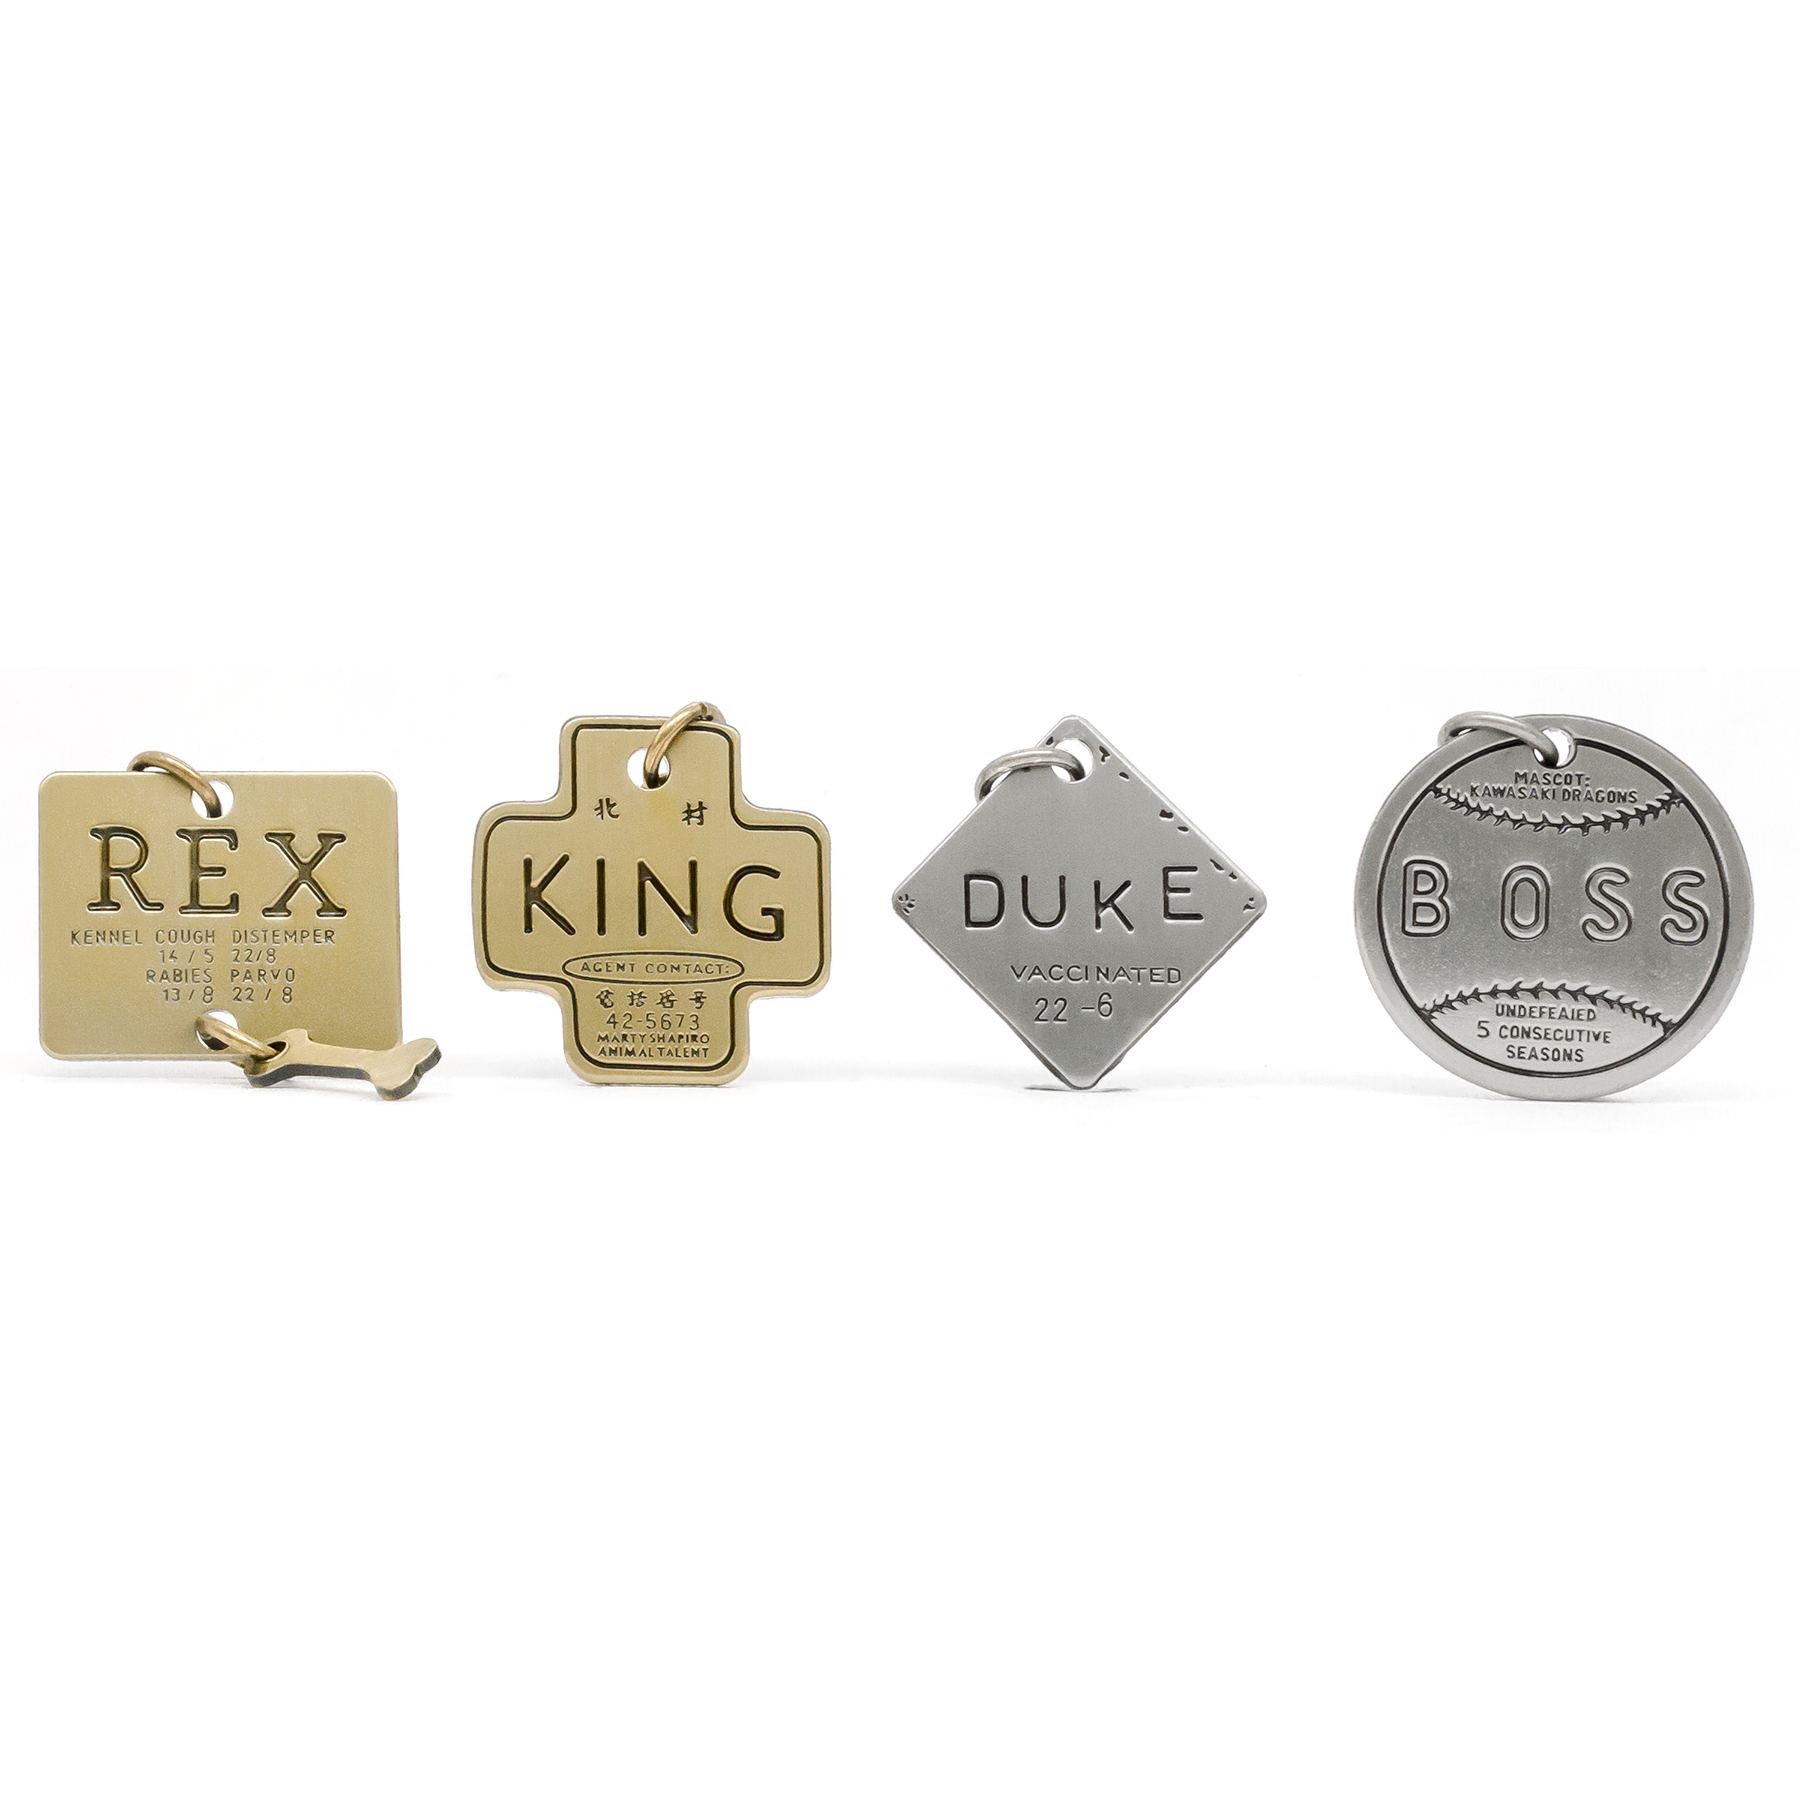 Duke (Isle of Dogs) engraved pin